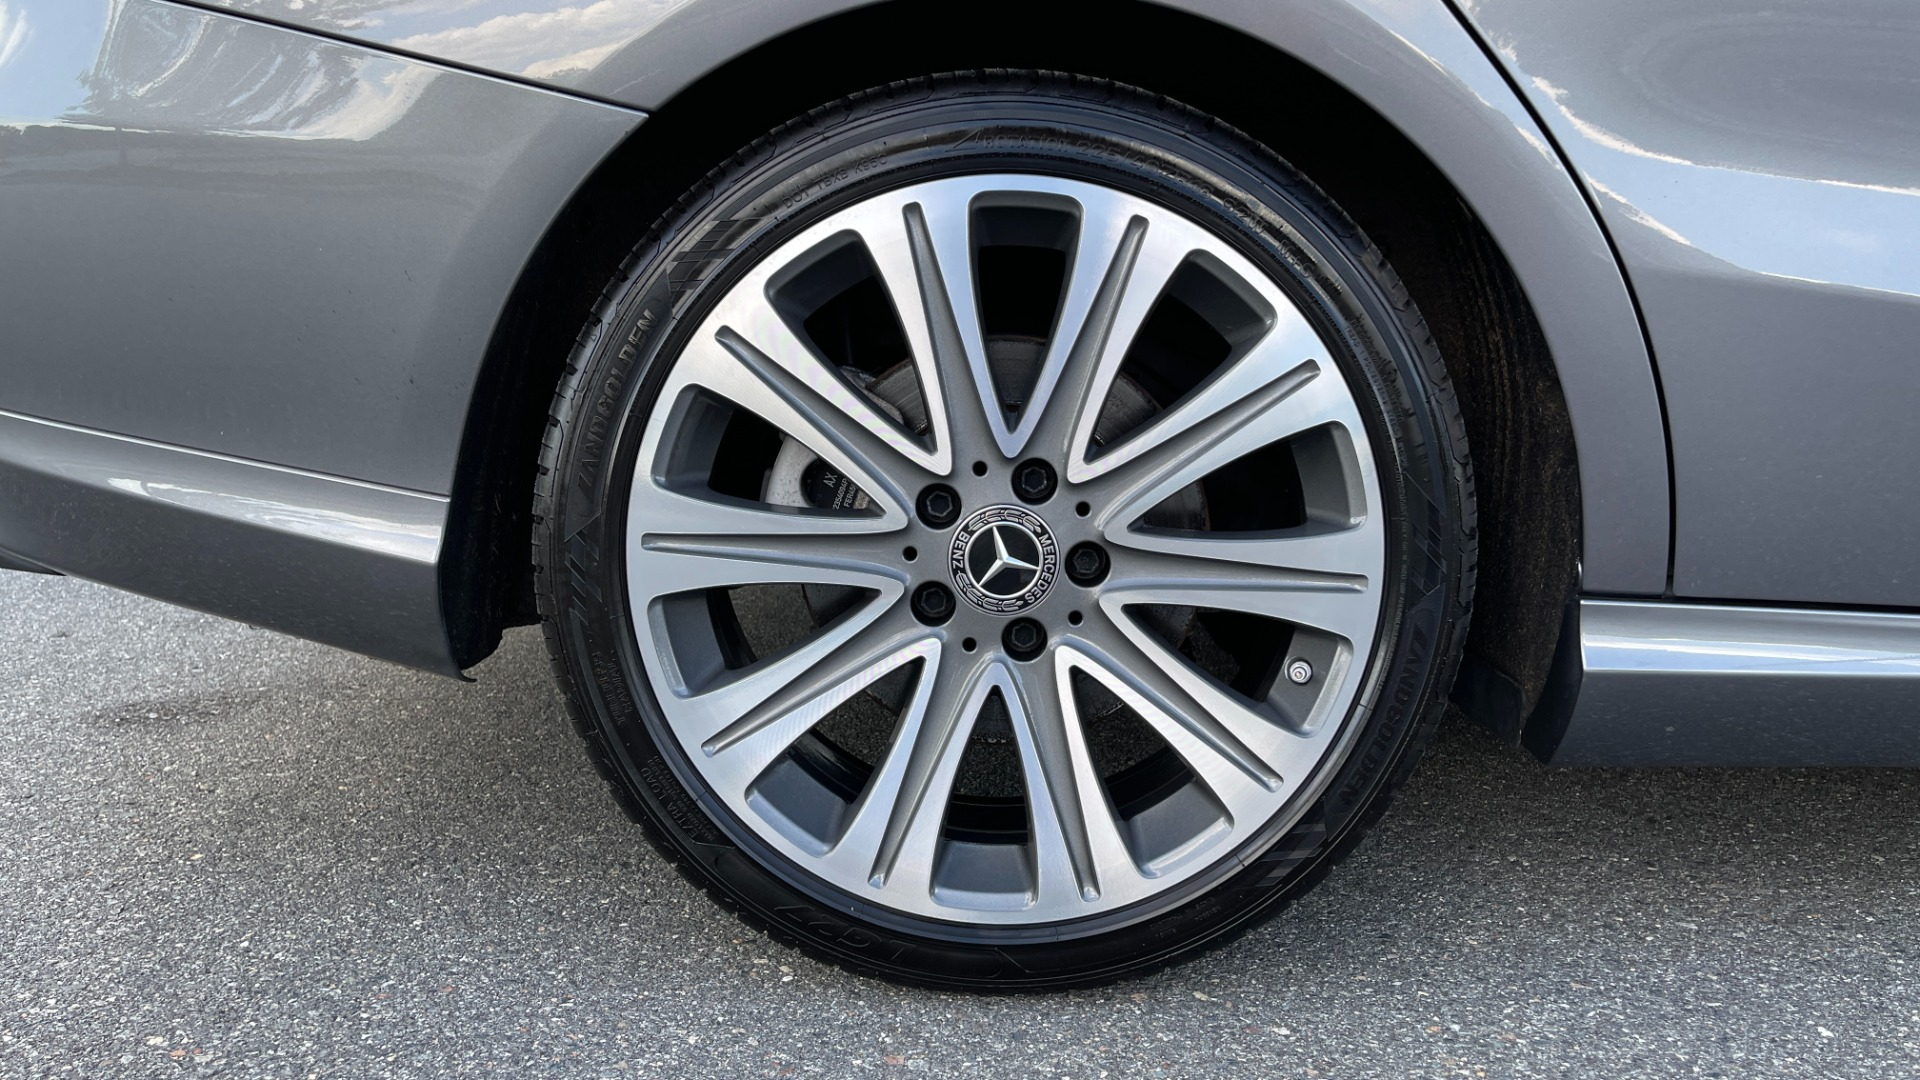 Used 2019 Mercedes-Benz CLA 250 4MATIC PREM & CONV PKG / APPLE / PANO-ROOF / H/K SND / REARVIEW for sale $29,795 at Formula Imports in Charlotte NC 28227 69